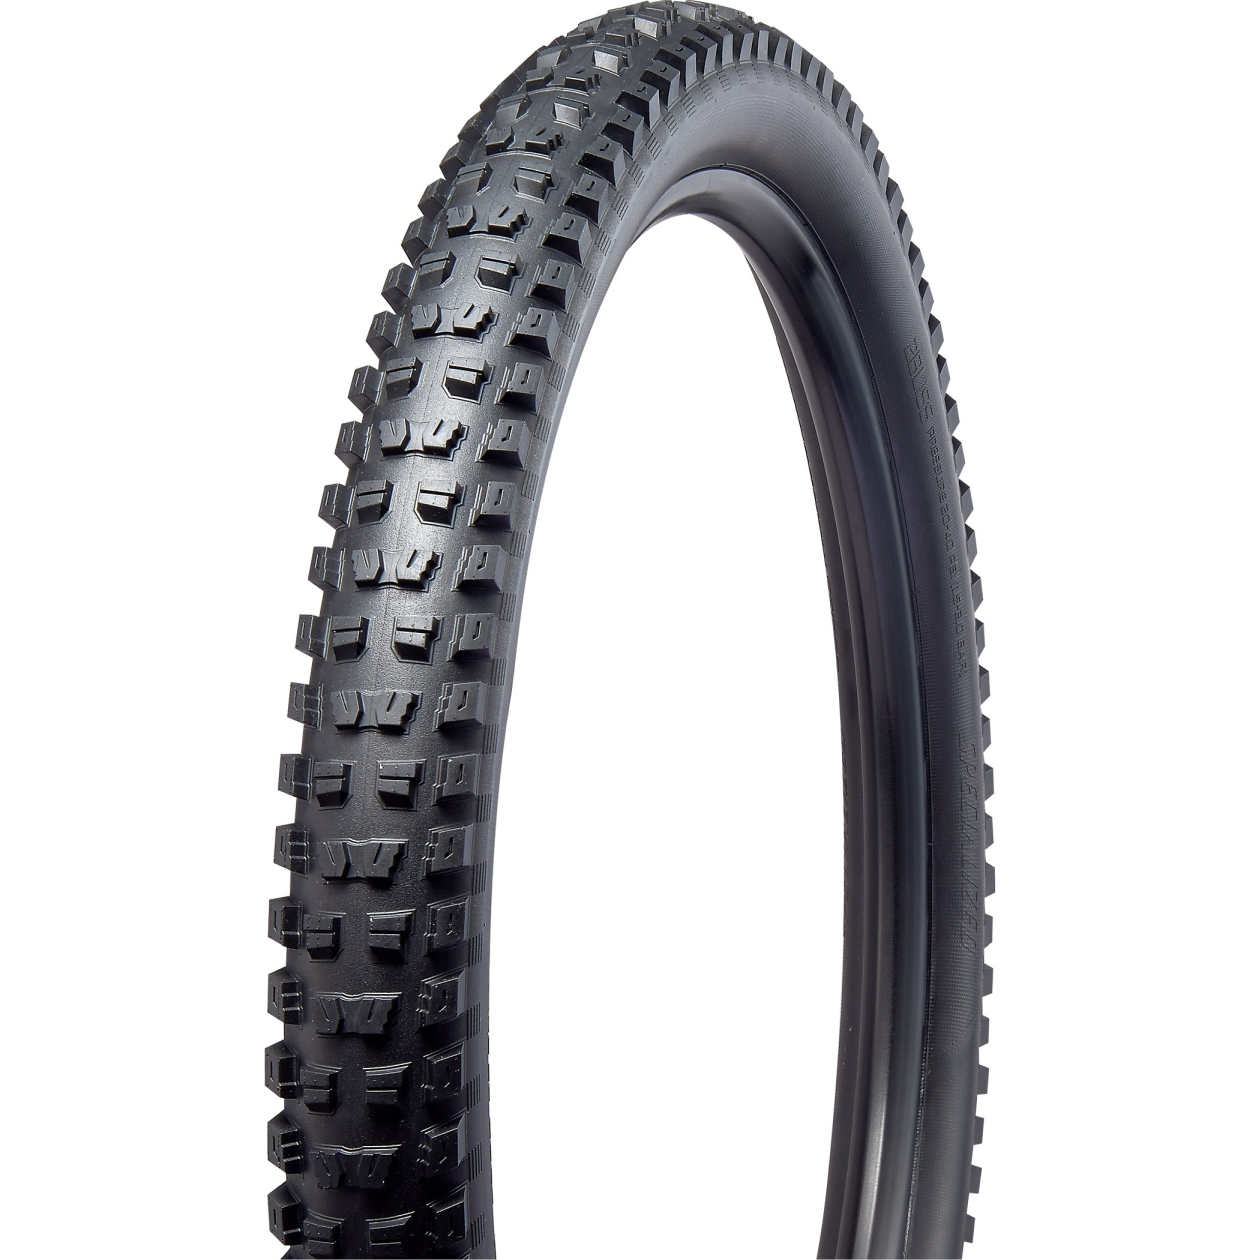 Picture of Specialized Butcher Grid Gravity 2Bliss Ready T9 MTB Folding Tire 29x2.60 Inch - black